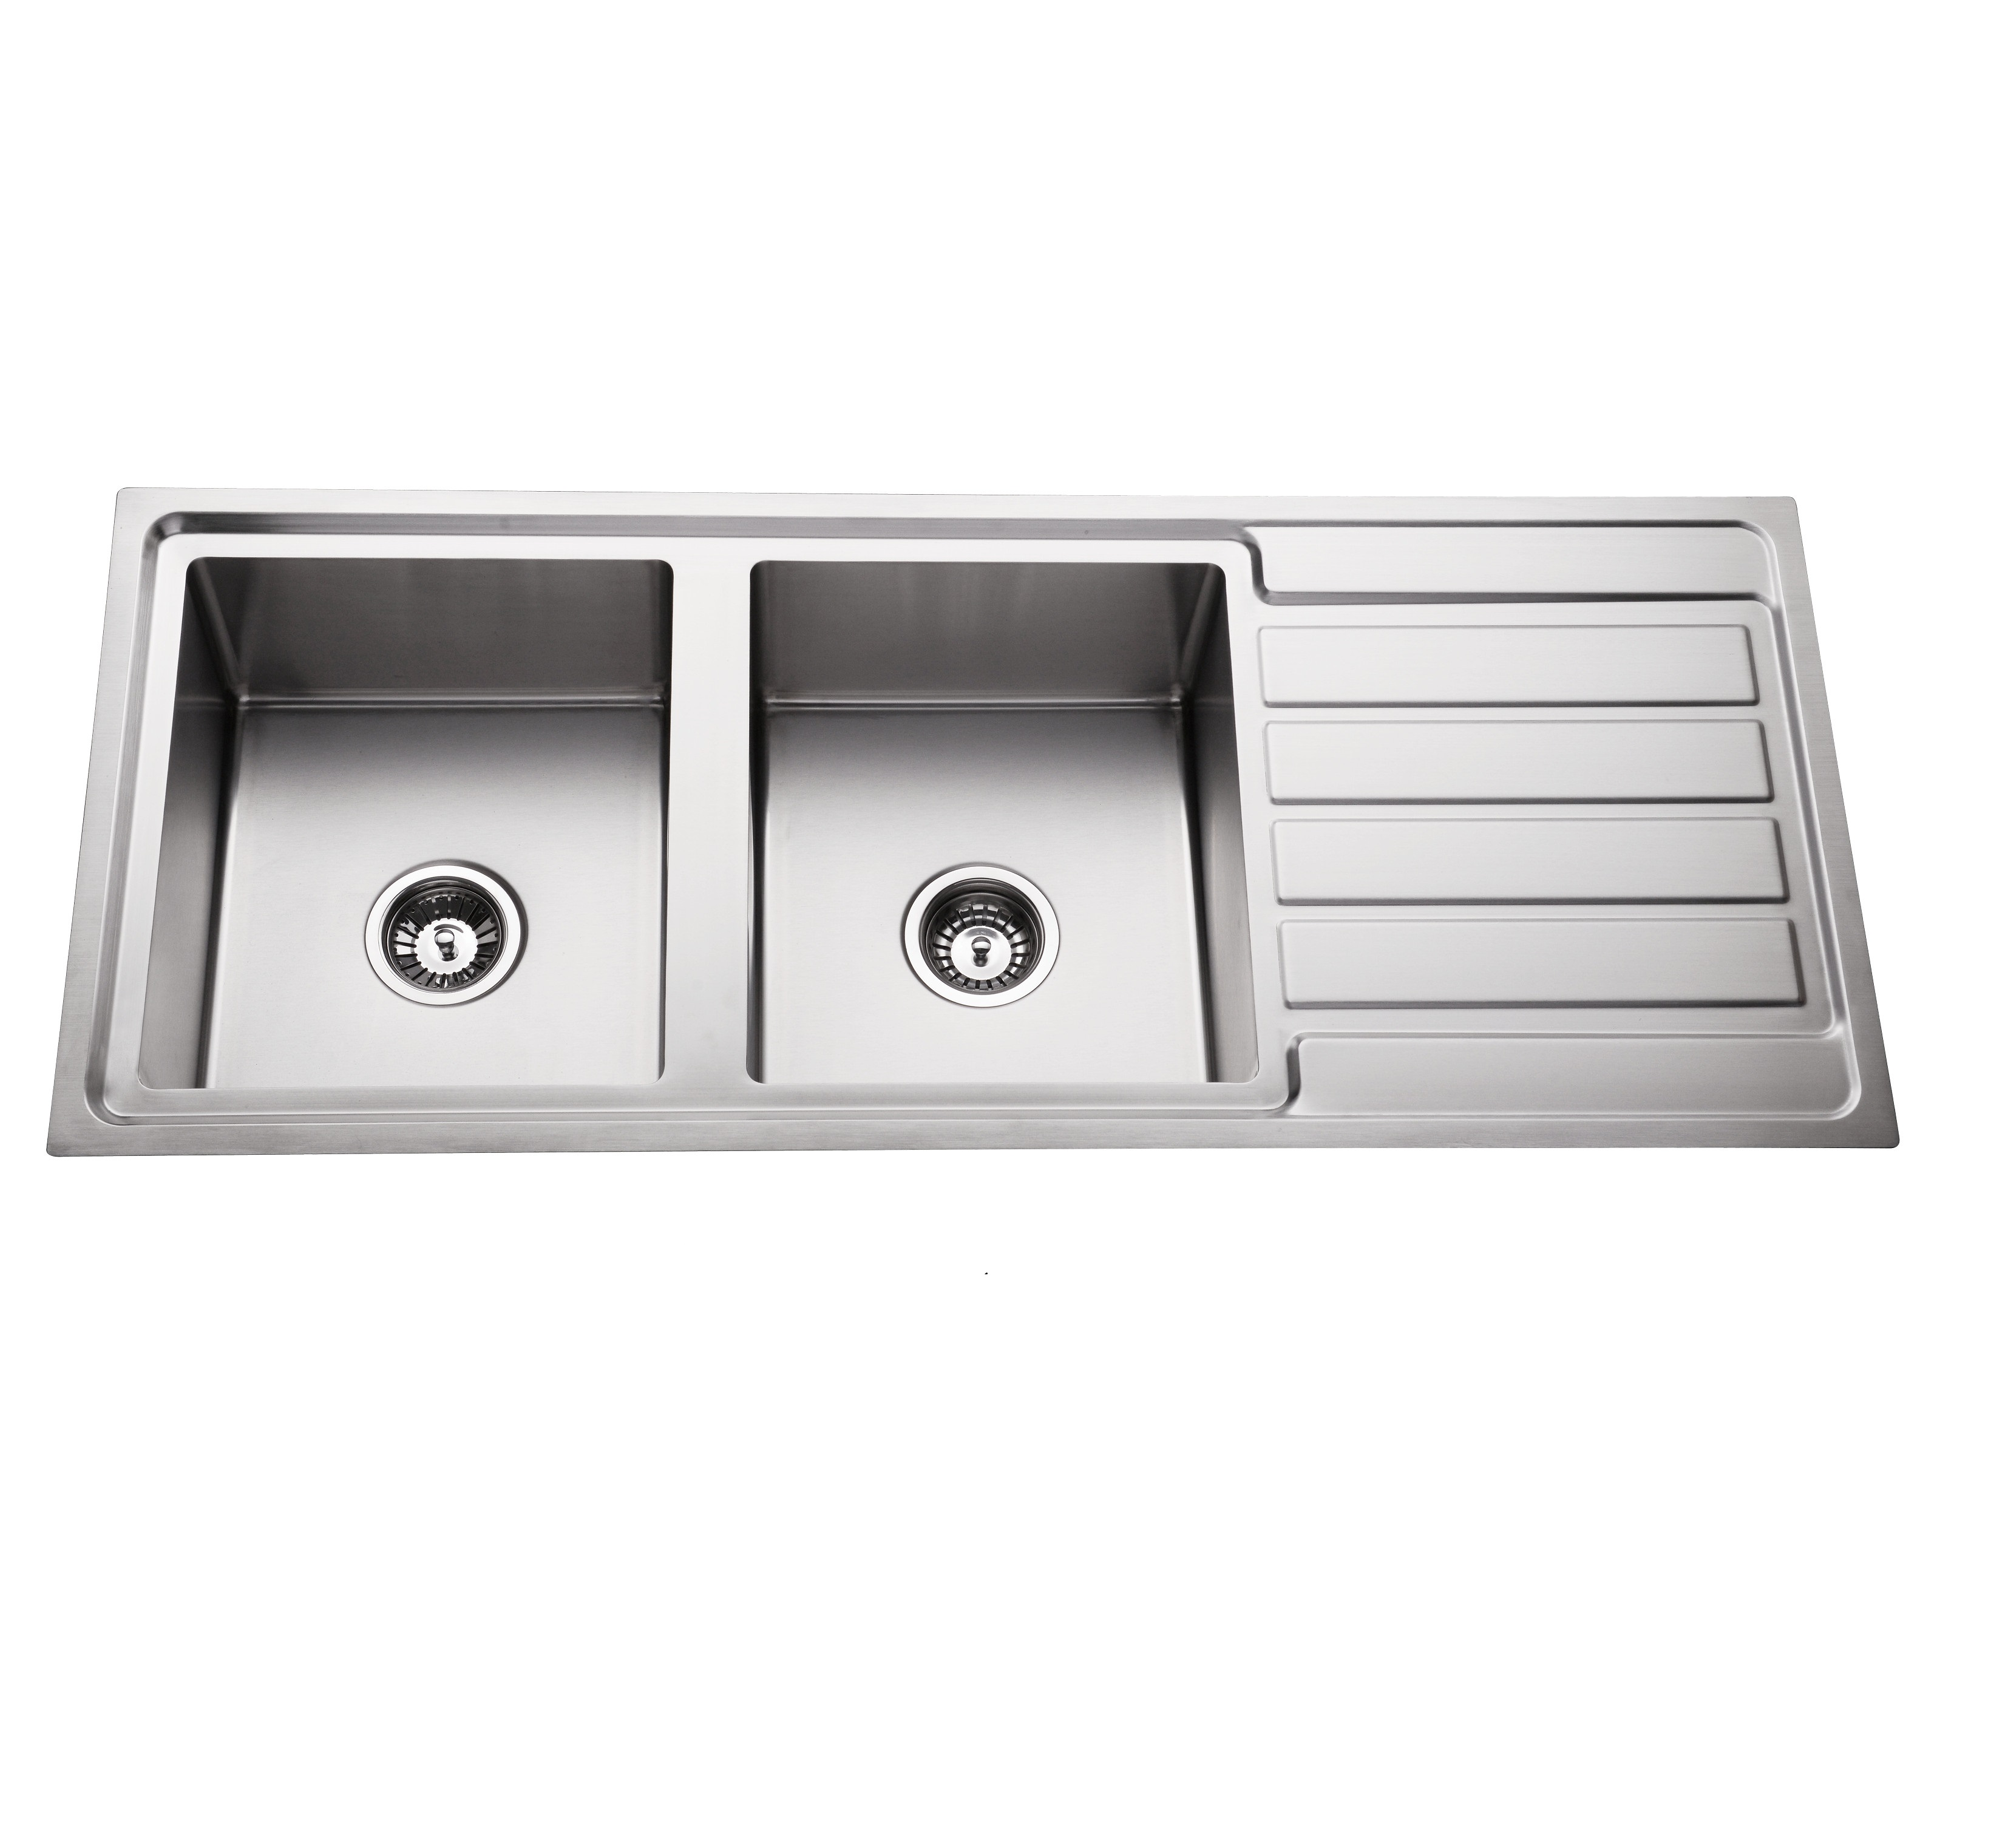 304 Stainless Steel Double Bowl Top Mount Kitchen Handmade